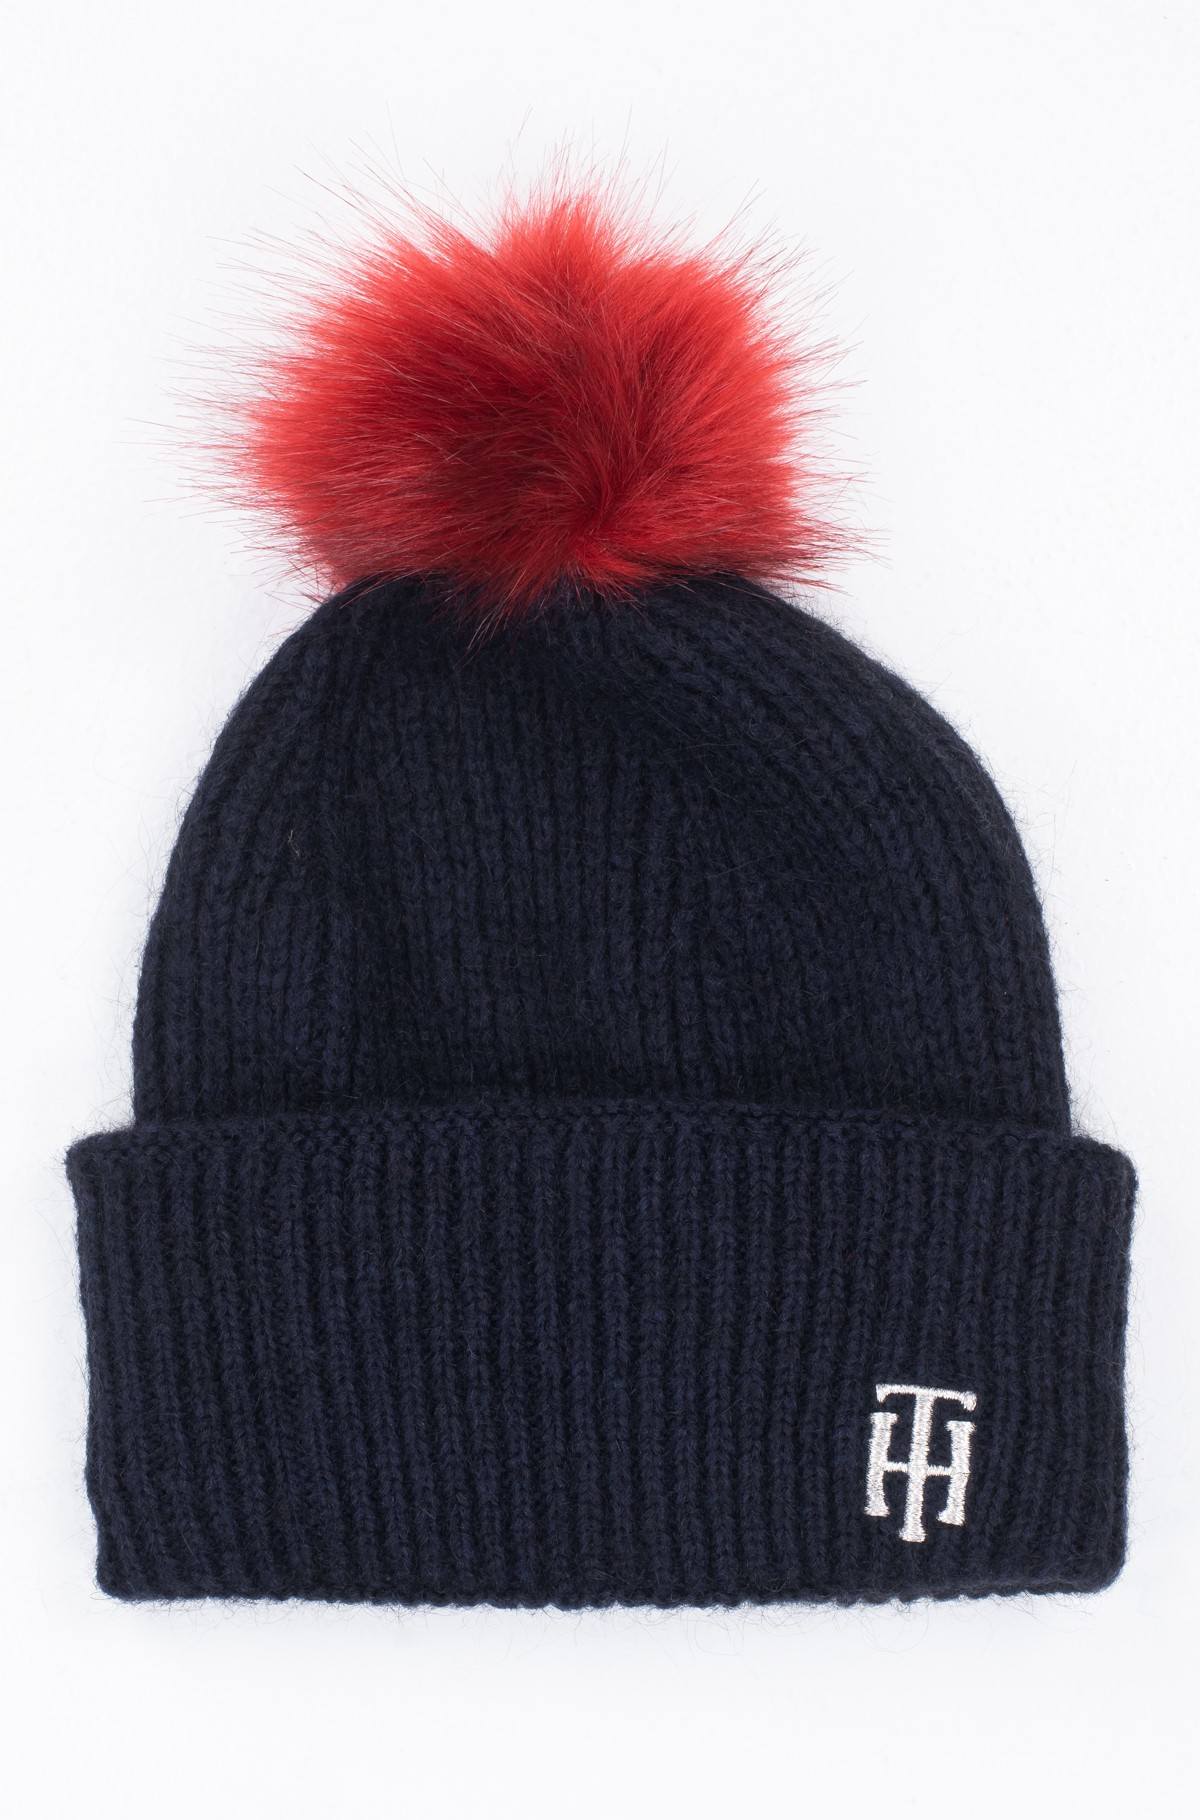 Kepurė TH POMPOM BEANIE-full-3